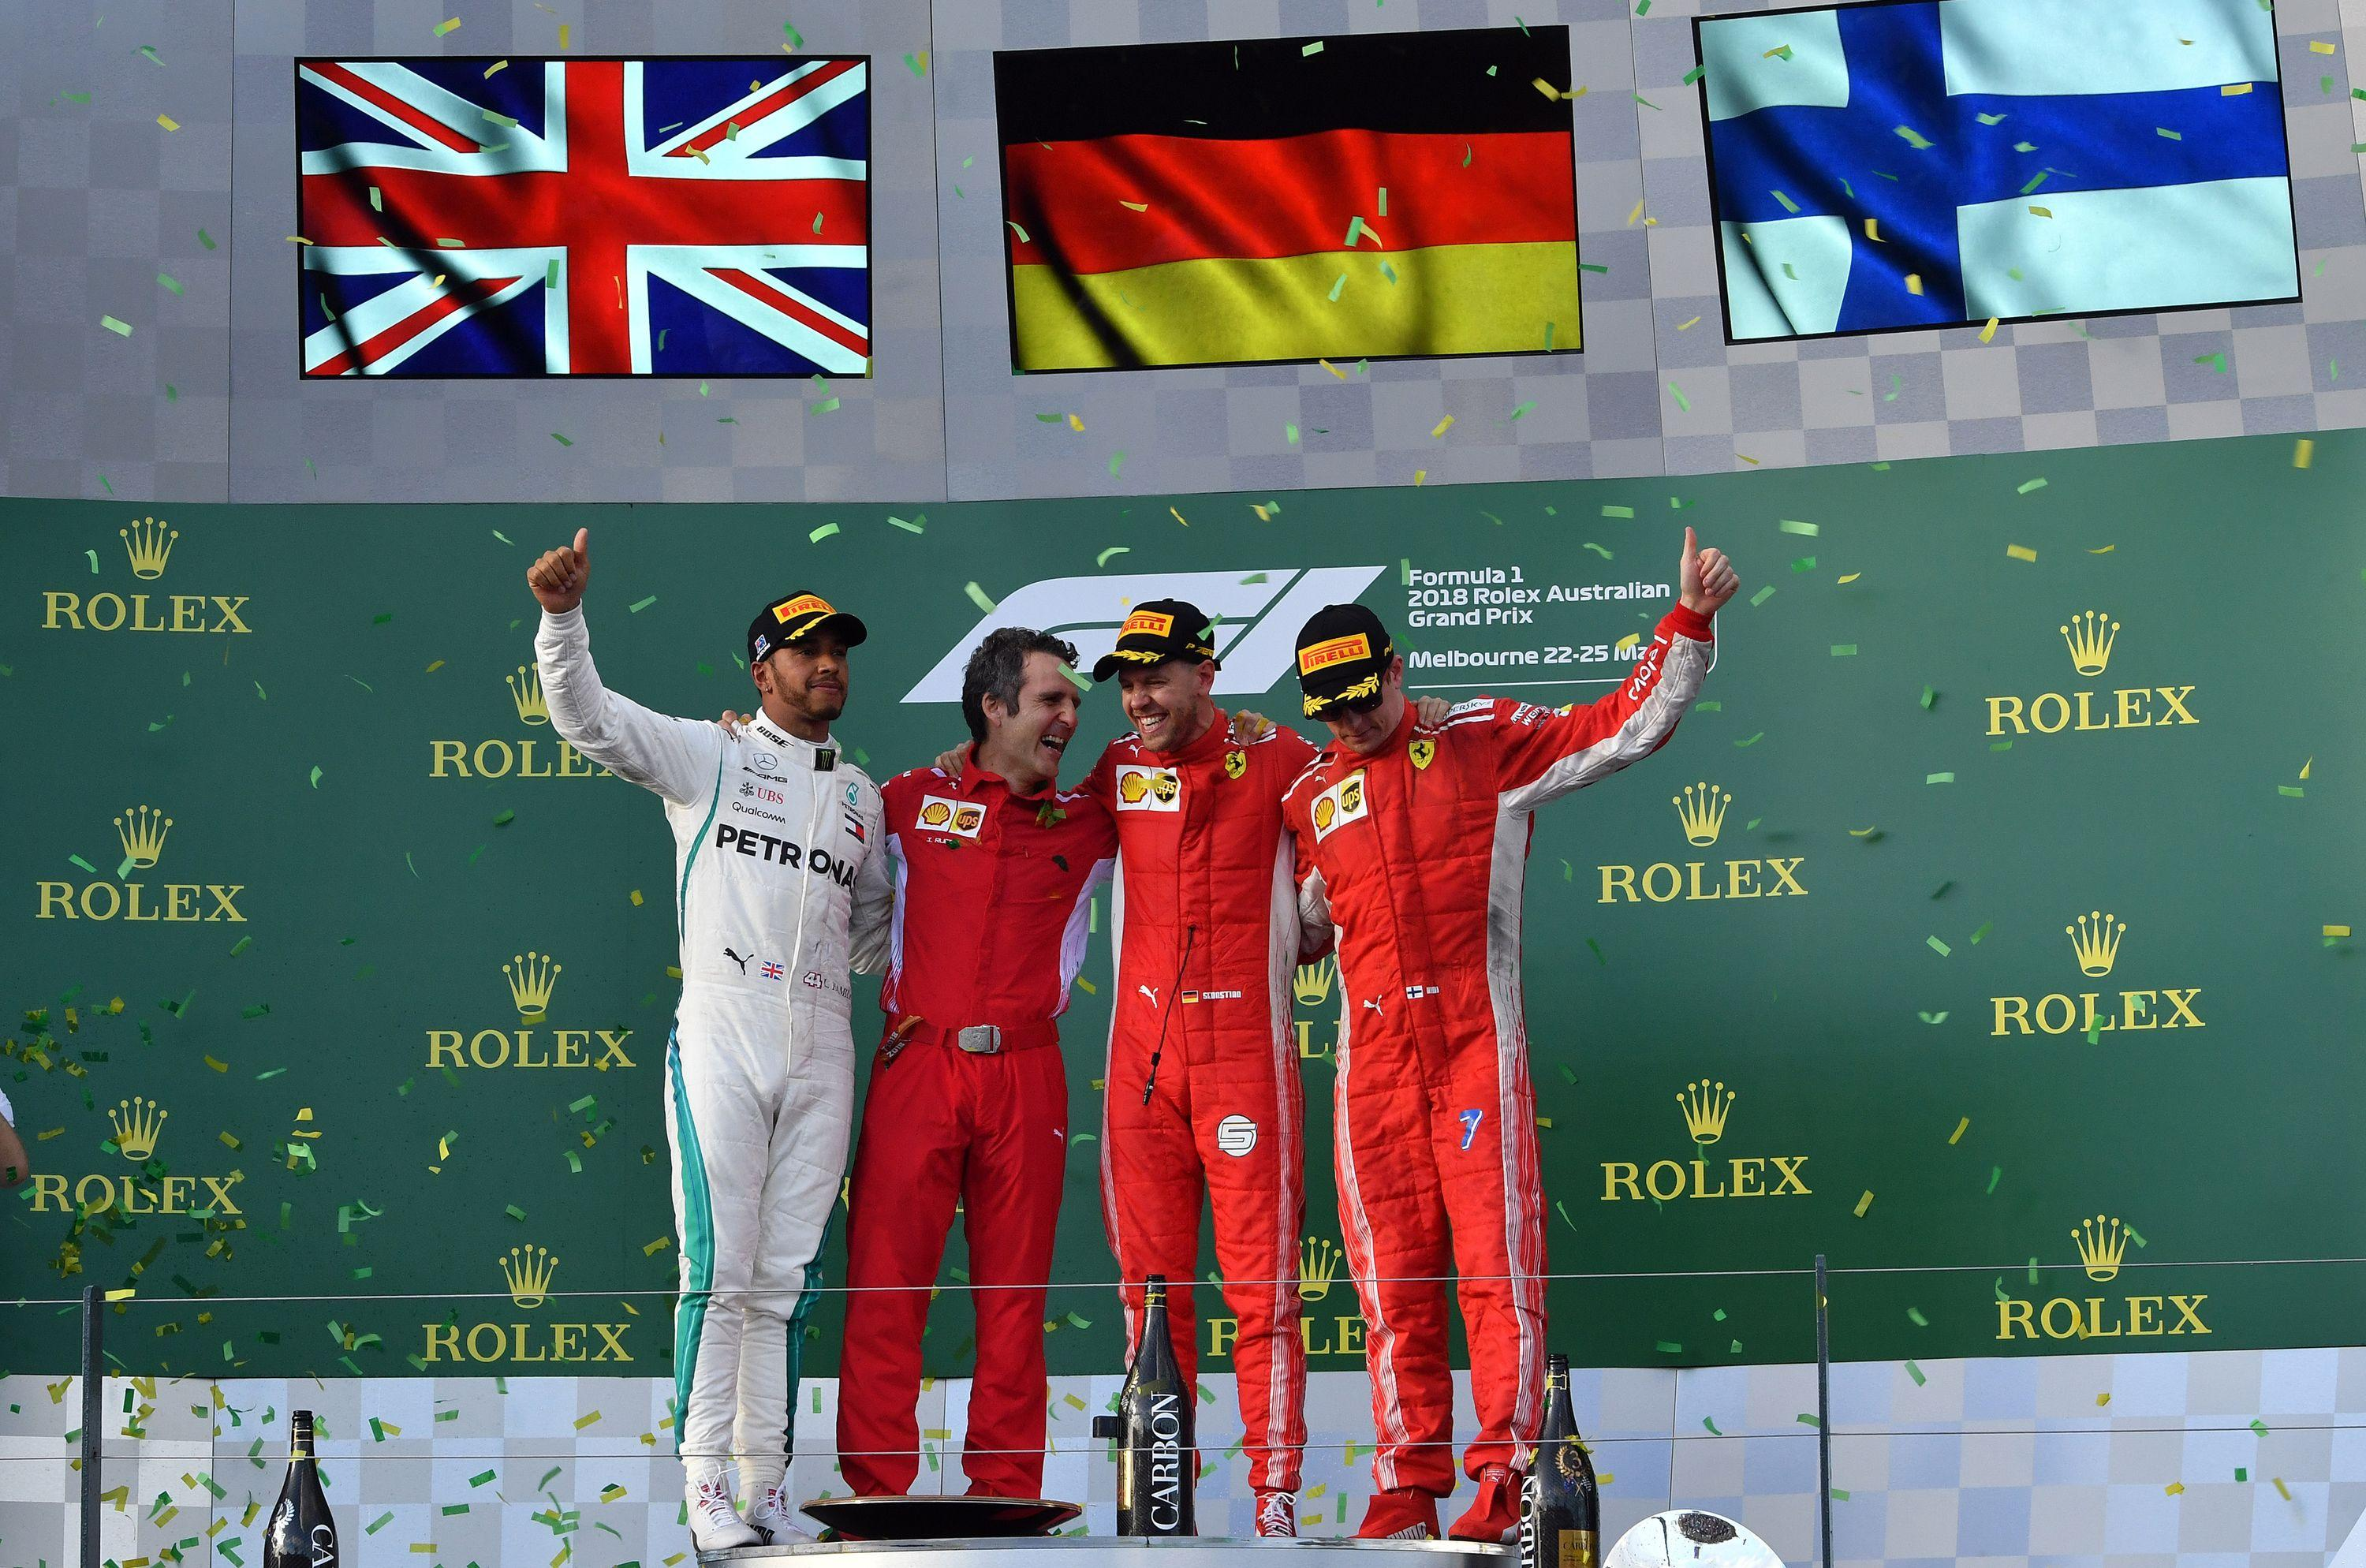 Sebastian Vettel triumphed in the Australian Grand Prix after overtaking Lewis Hamilton in the pit lane